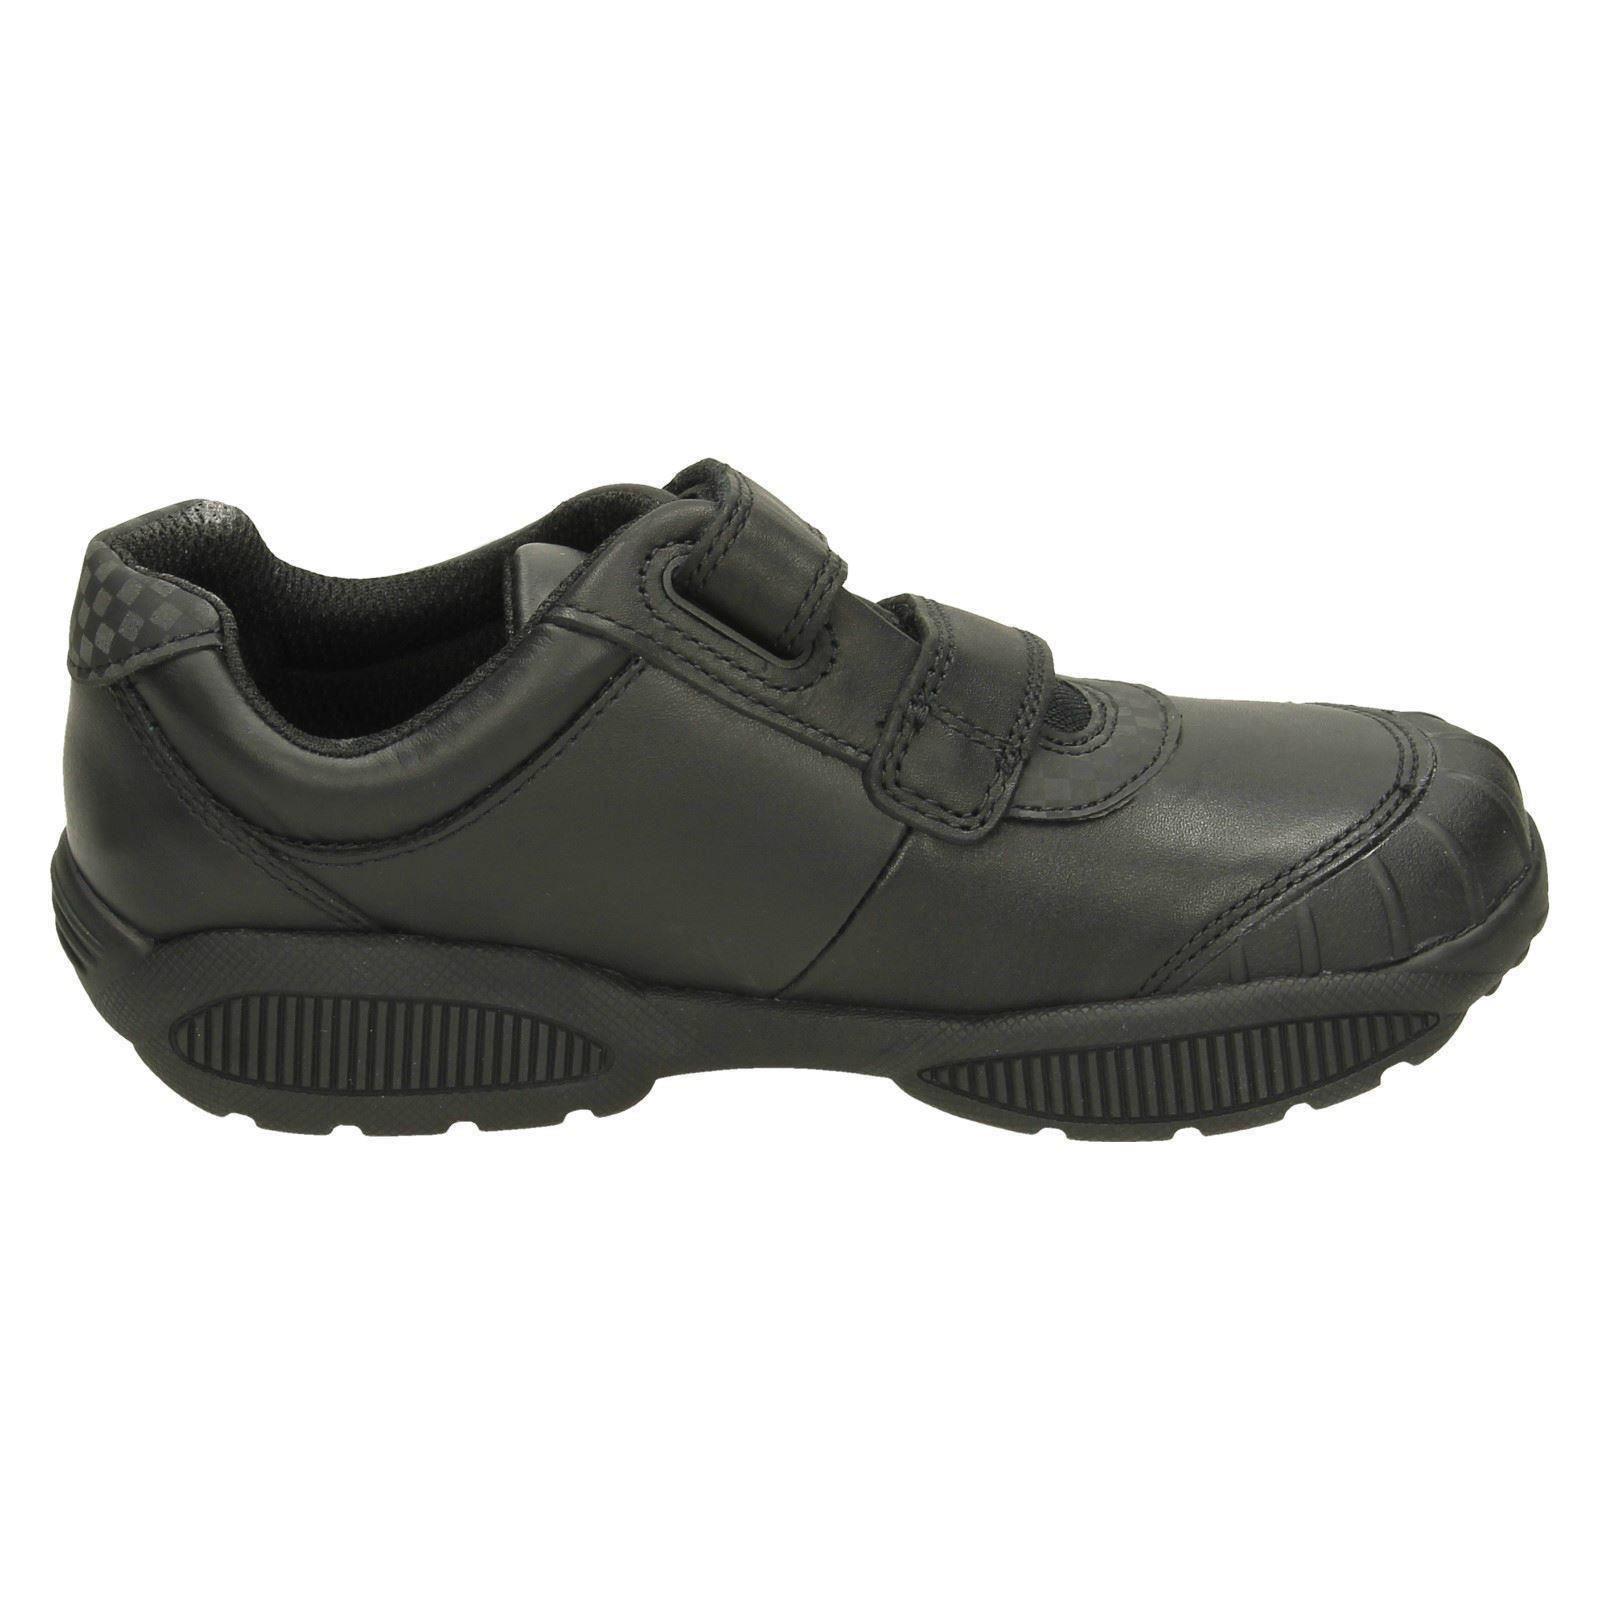 Jonas Glo Boys Clarks Scuff Protection Formal Shoes